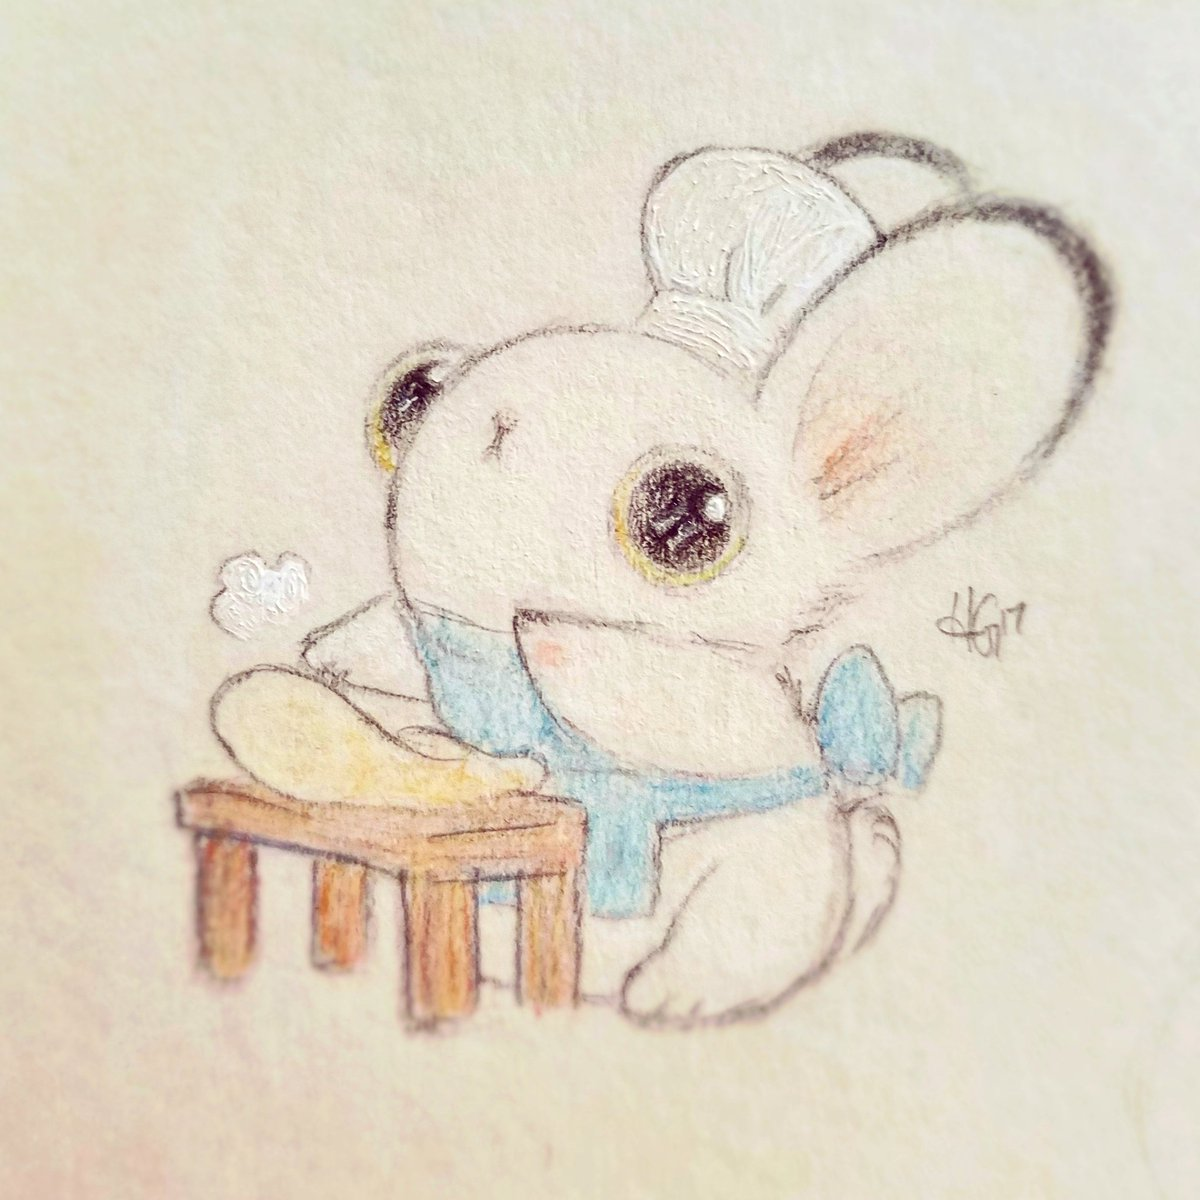 Baker Bunneh is at it again!  What is he making this time...?   #bunny #drawing <br>http://pic.twitter.com/FwmuYCLYbU